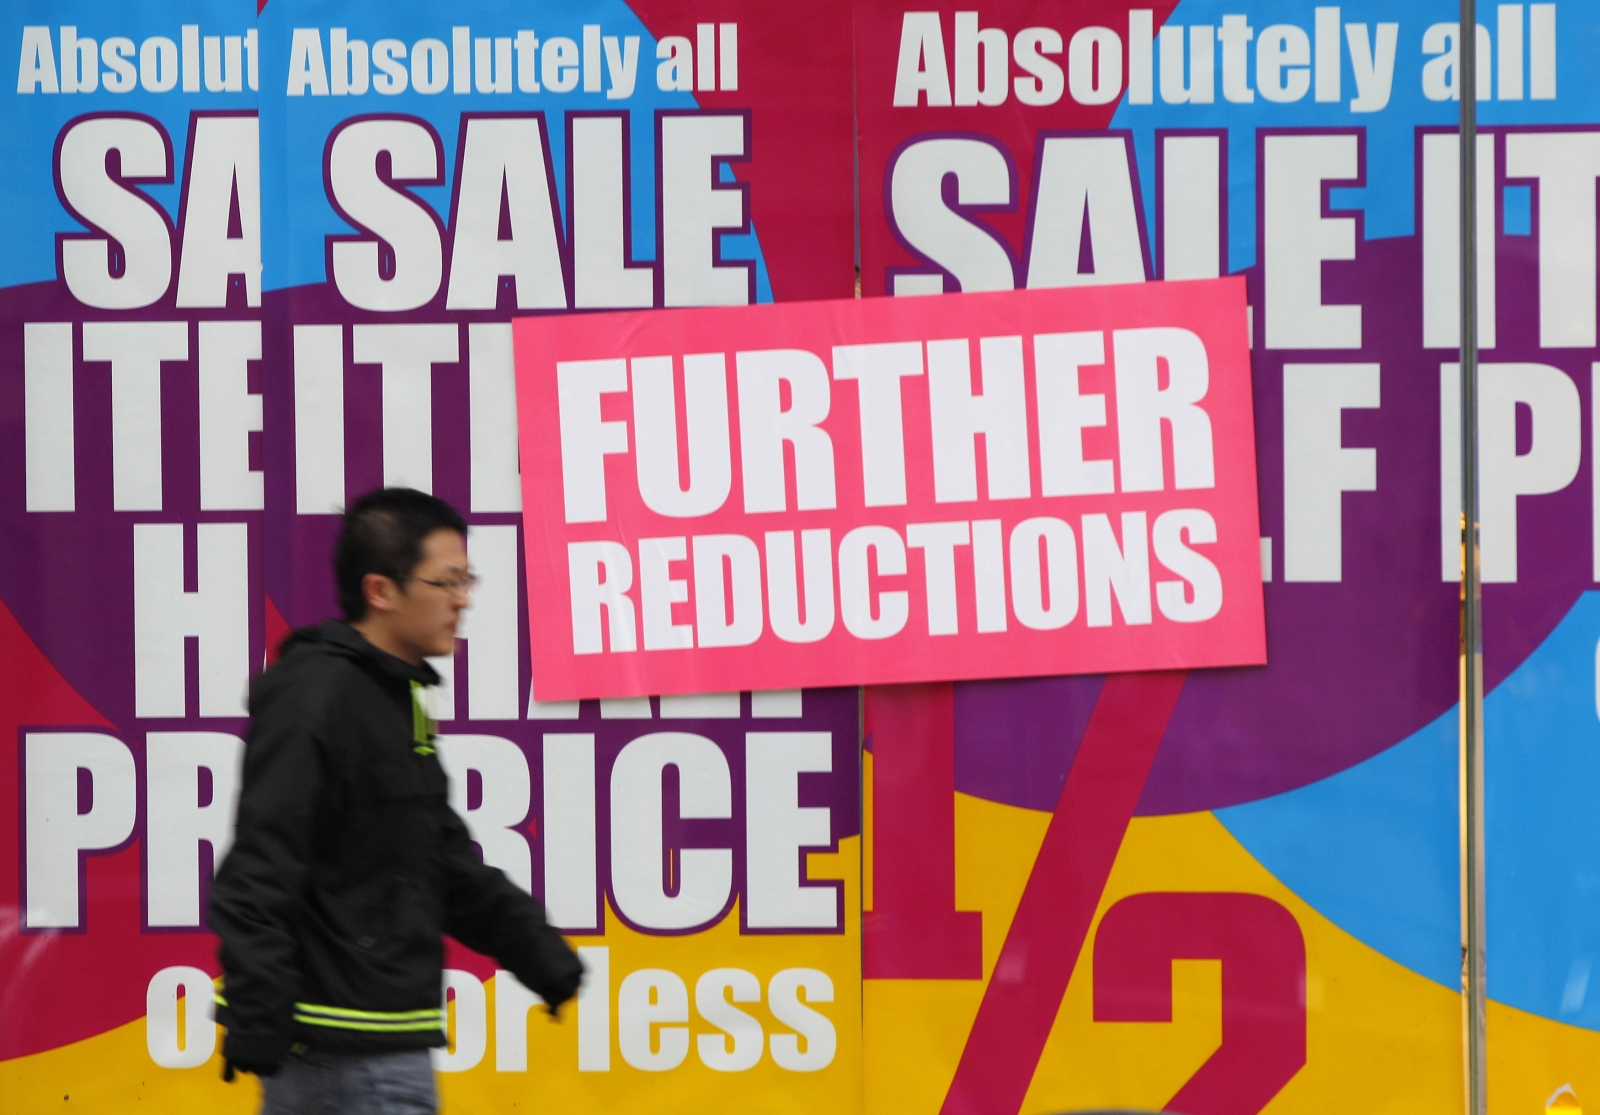 Discount shopping in Manchester